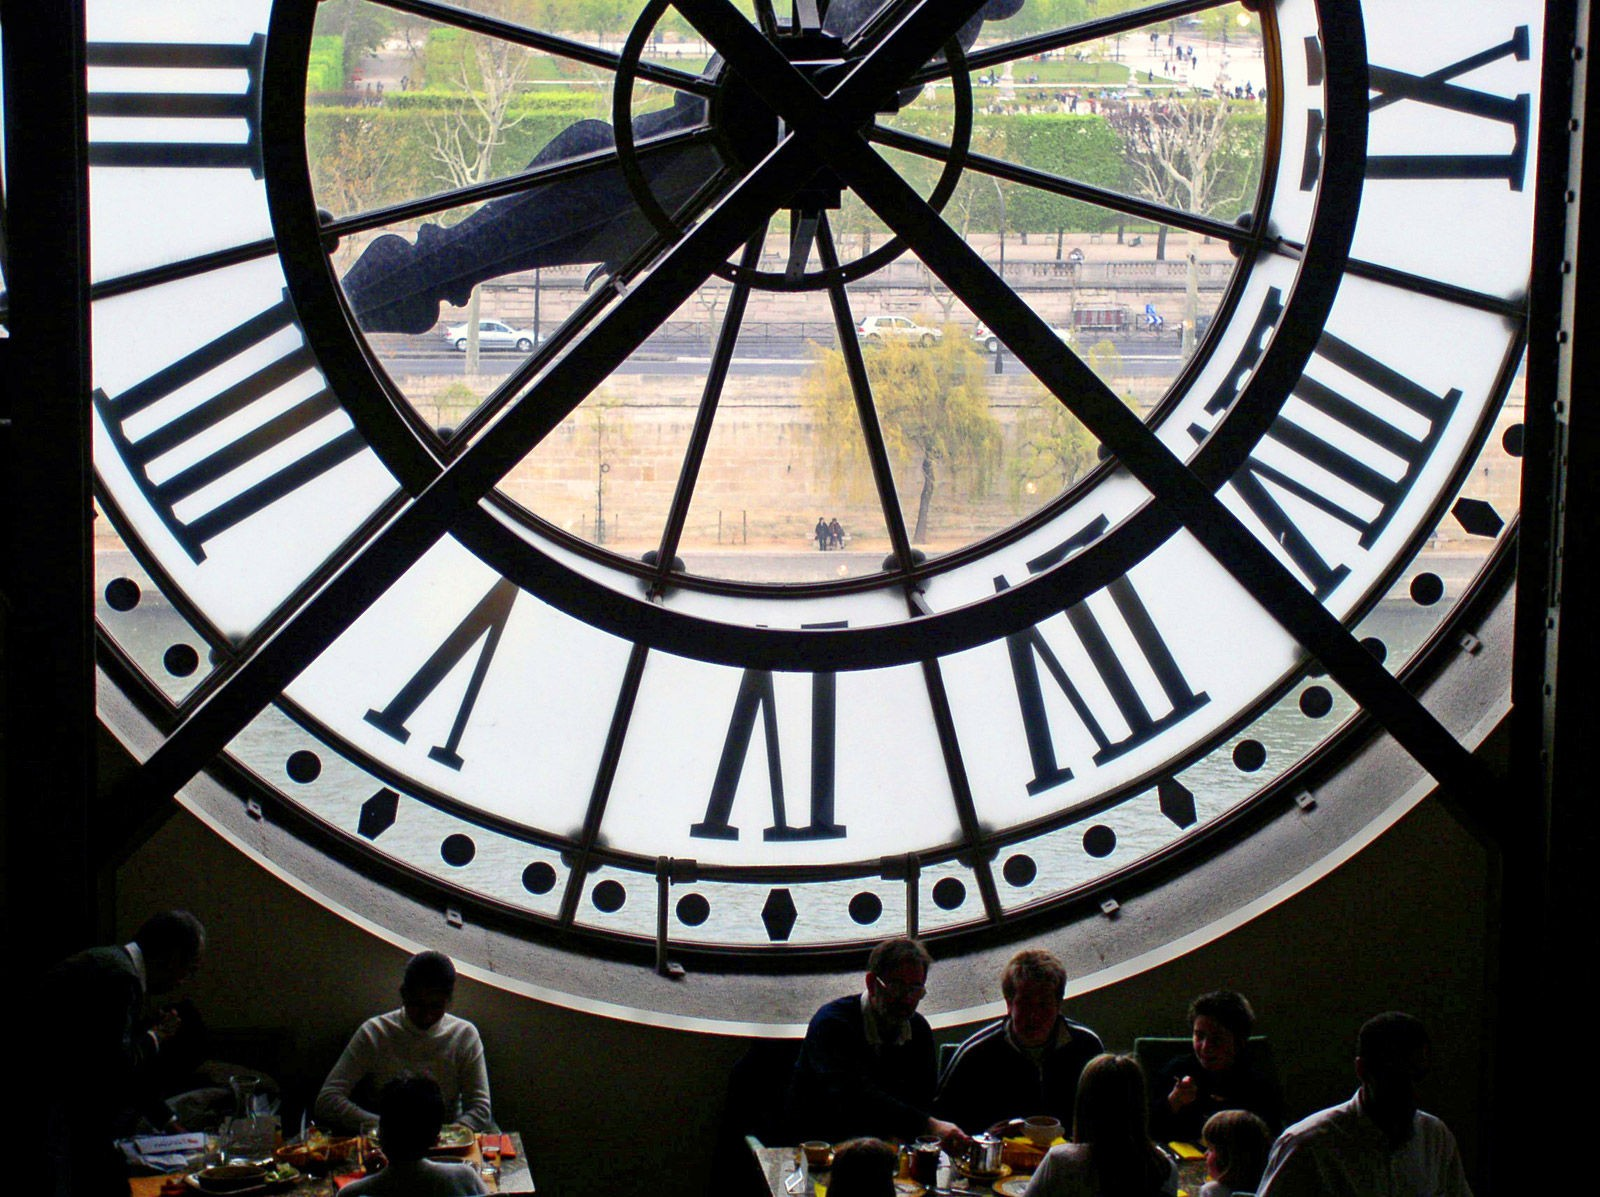 Behind the Clock at the Musee D'Orsay